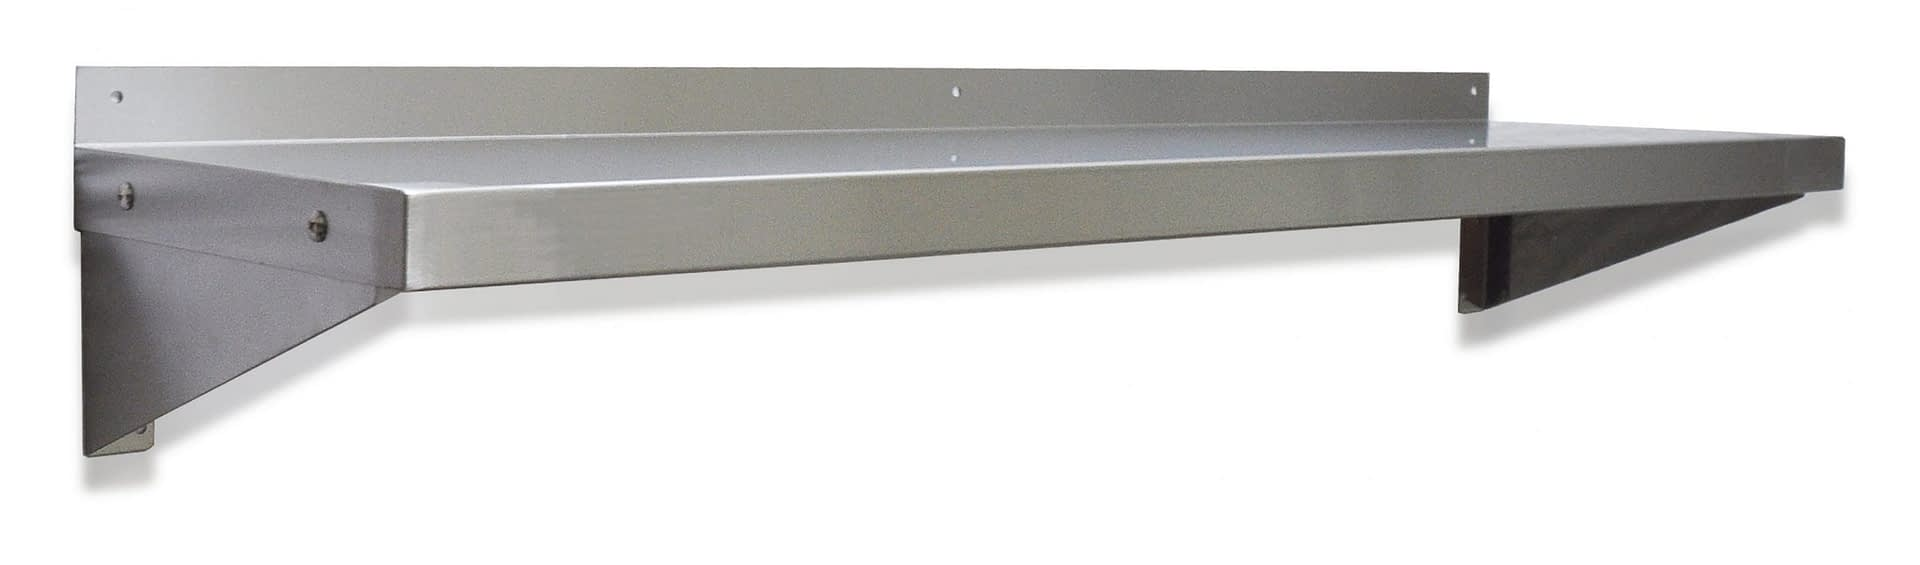 Stainless Steel Solid Wall Shelf, 1200 X 300mm deep